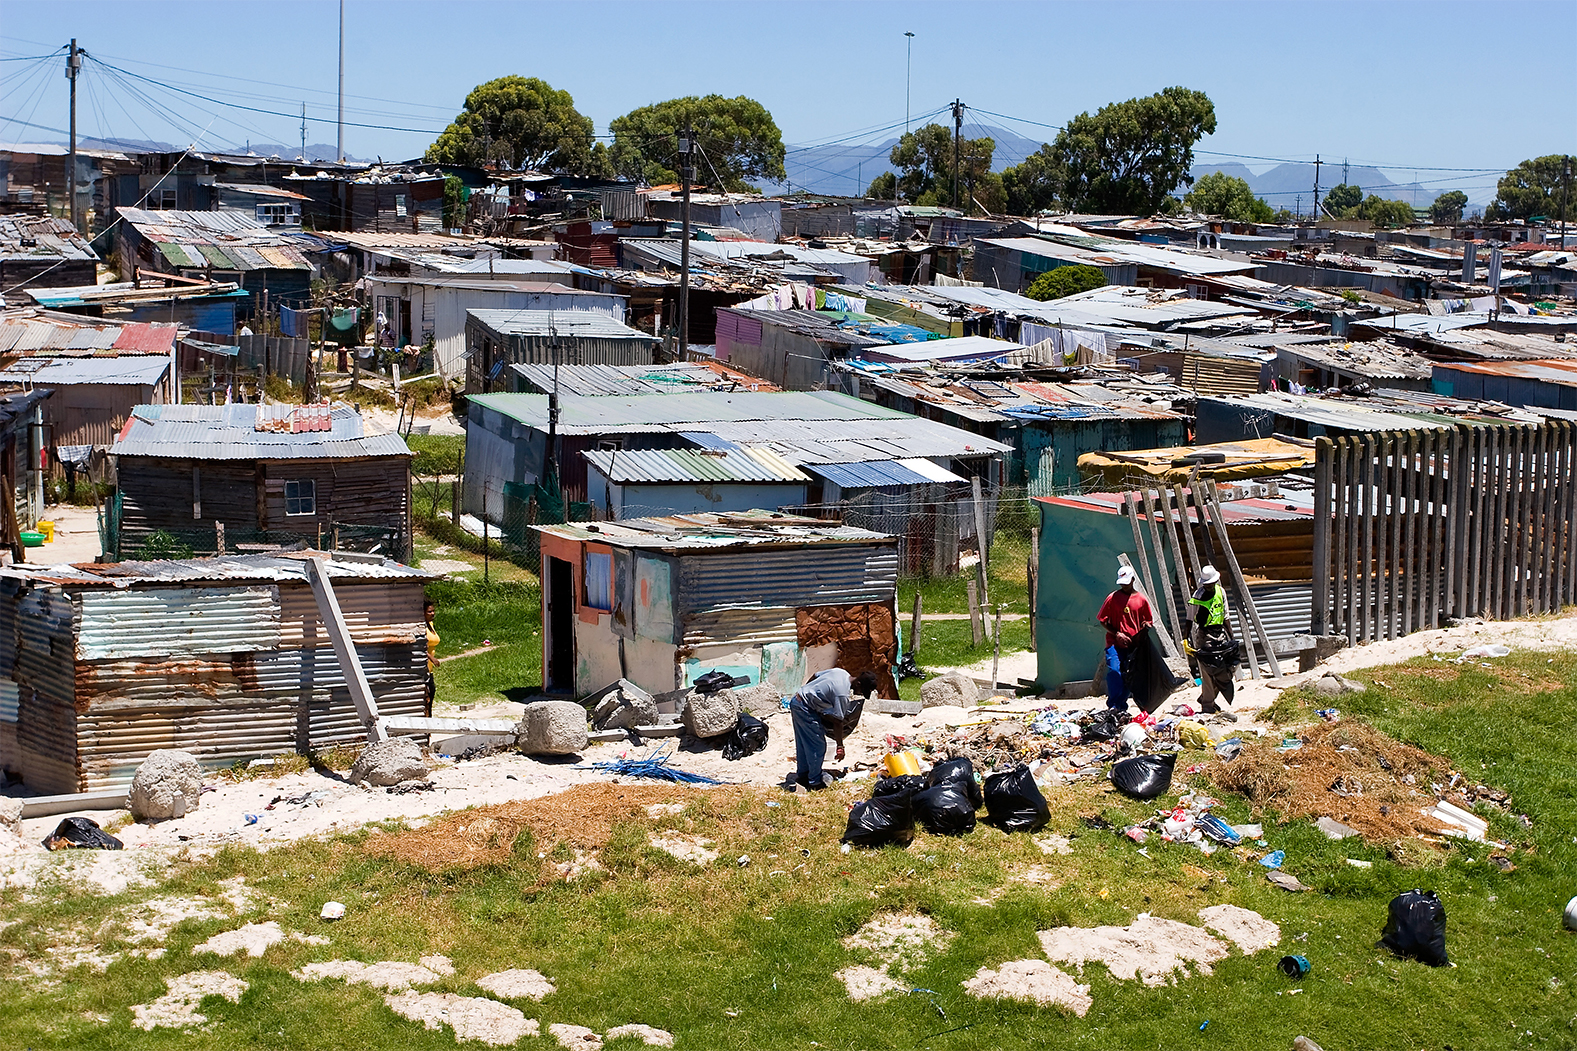 People picking up trash next to makeshift wall of township in Cape Town South Africa